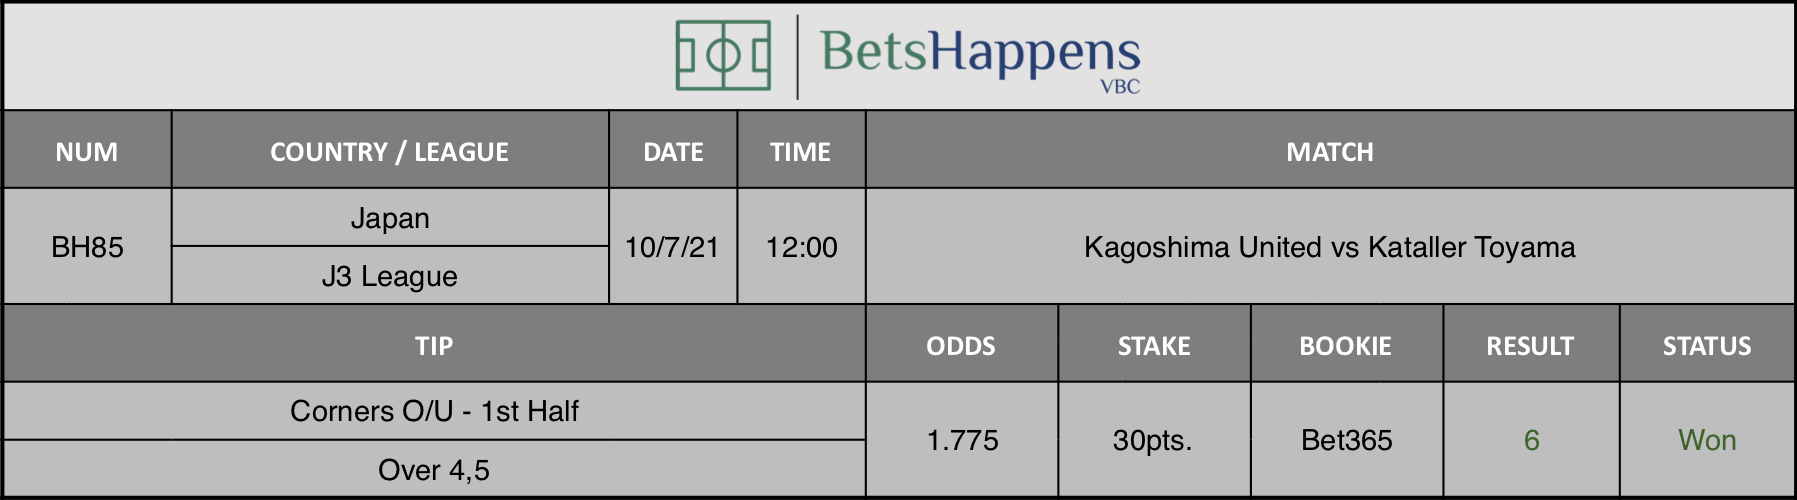 Results of our advice for the Kagoshima United vs Kataller Toyama match in which Corners O/U - 1st Half  Over 4,5 is recommended.